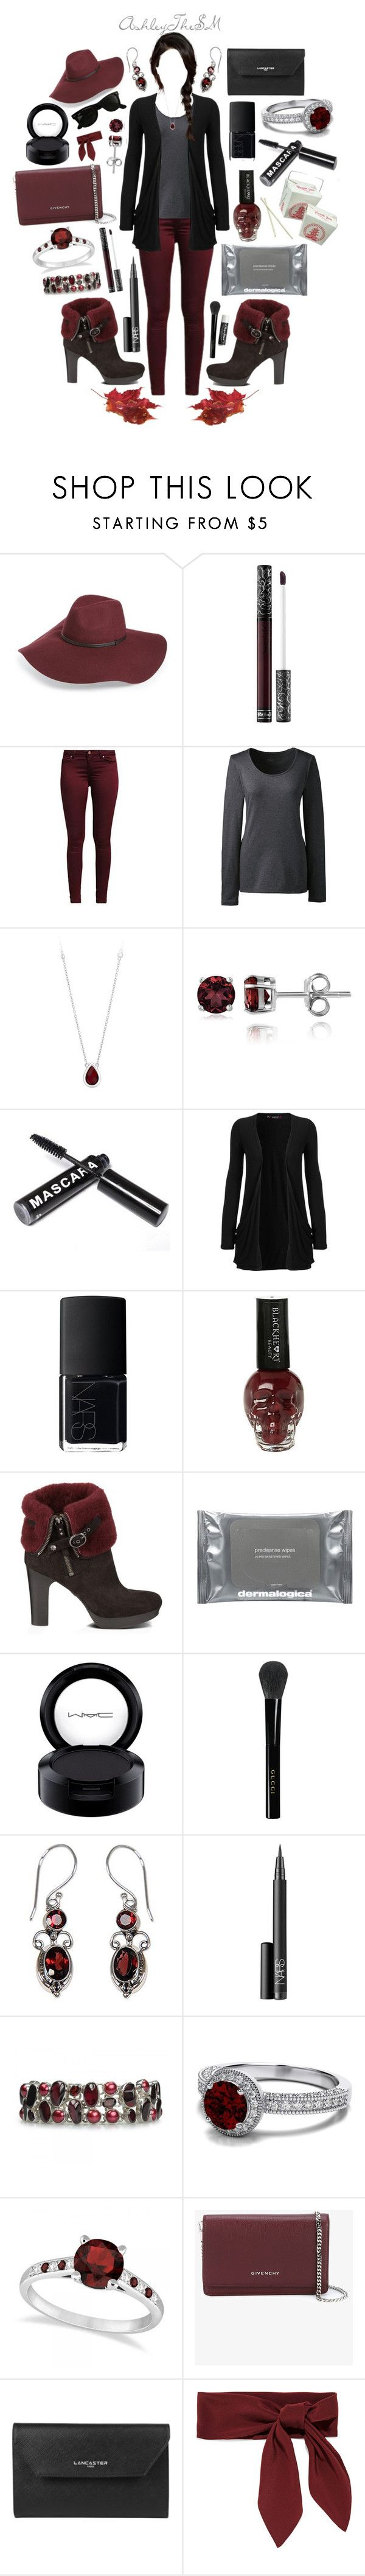 """{alternative} FALL fashion"" by ashleythesm ❤ liked on Polyvore featuring Halogen, Kat Von D, Lands' End, Glitzy Rocks, WearAll, NARS Cosmetics, UGG Australia, Dermalogica, Chapstick and MAC Cosmetics"